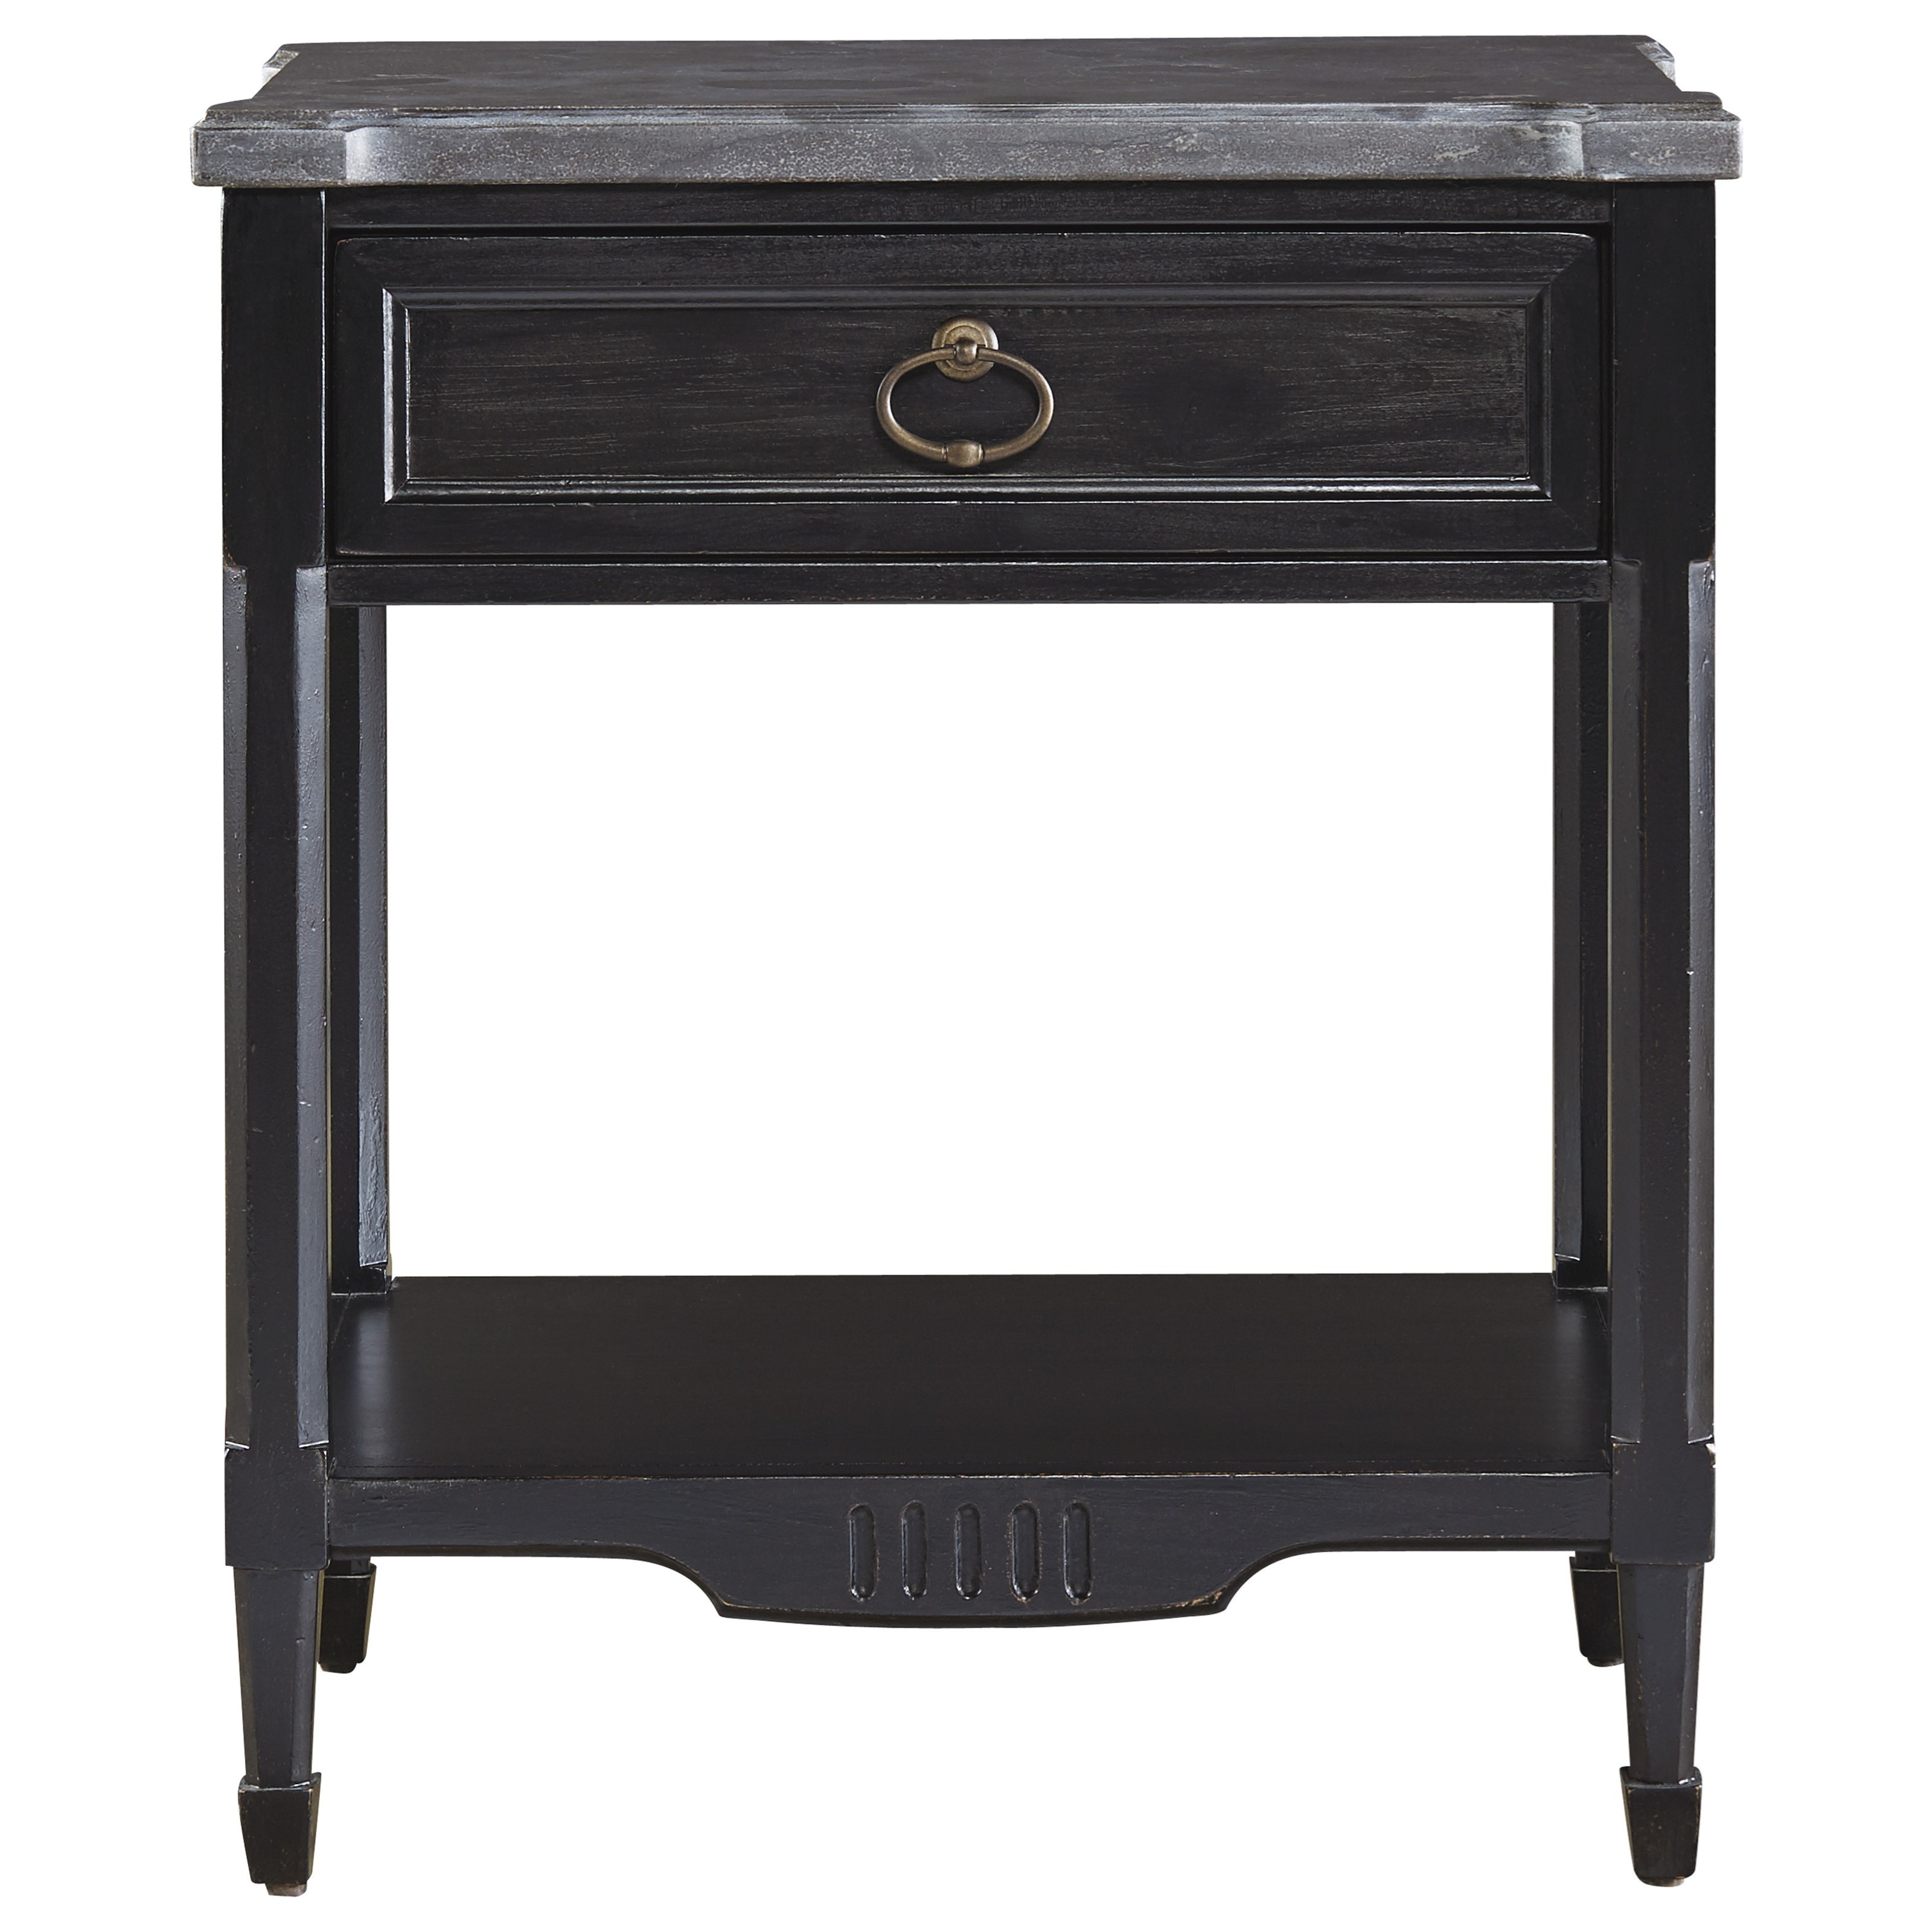 Wittman & Co. Gramercy Park Gramercy Park Bedside Table - Item Number: 572A355